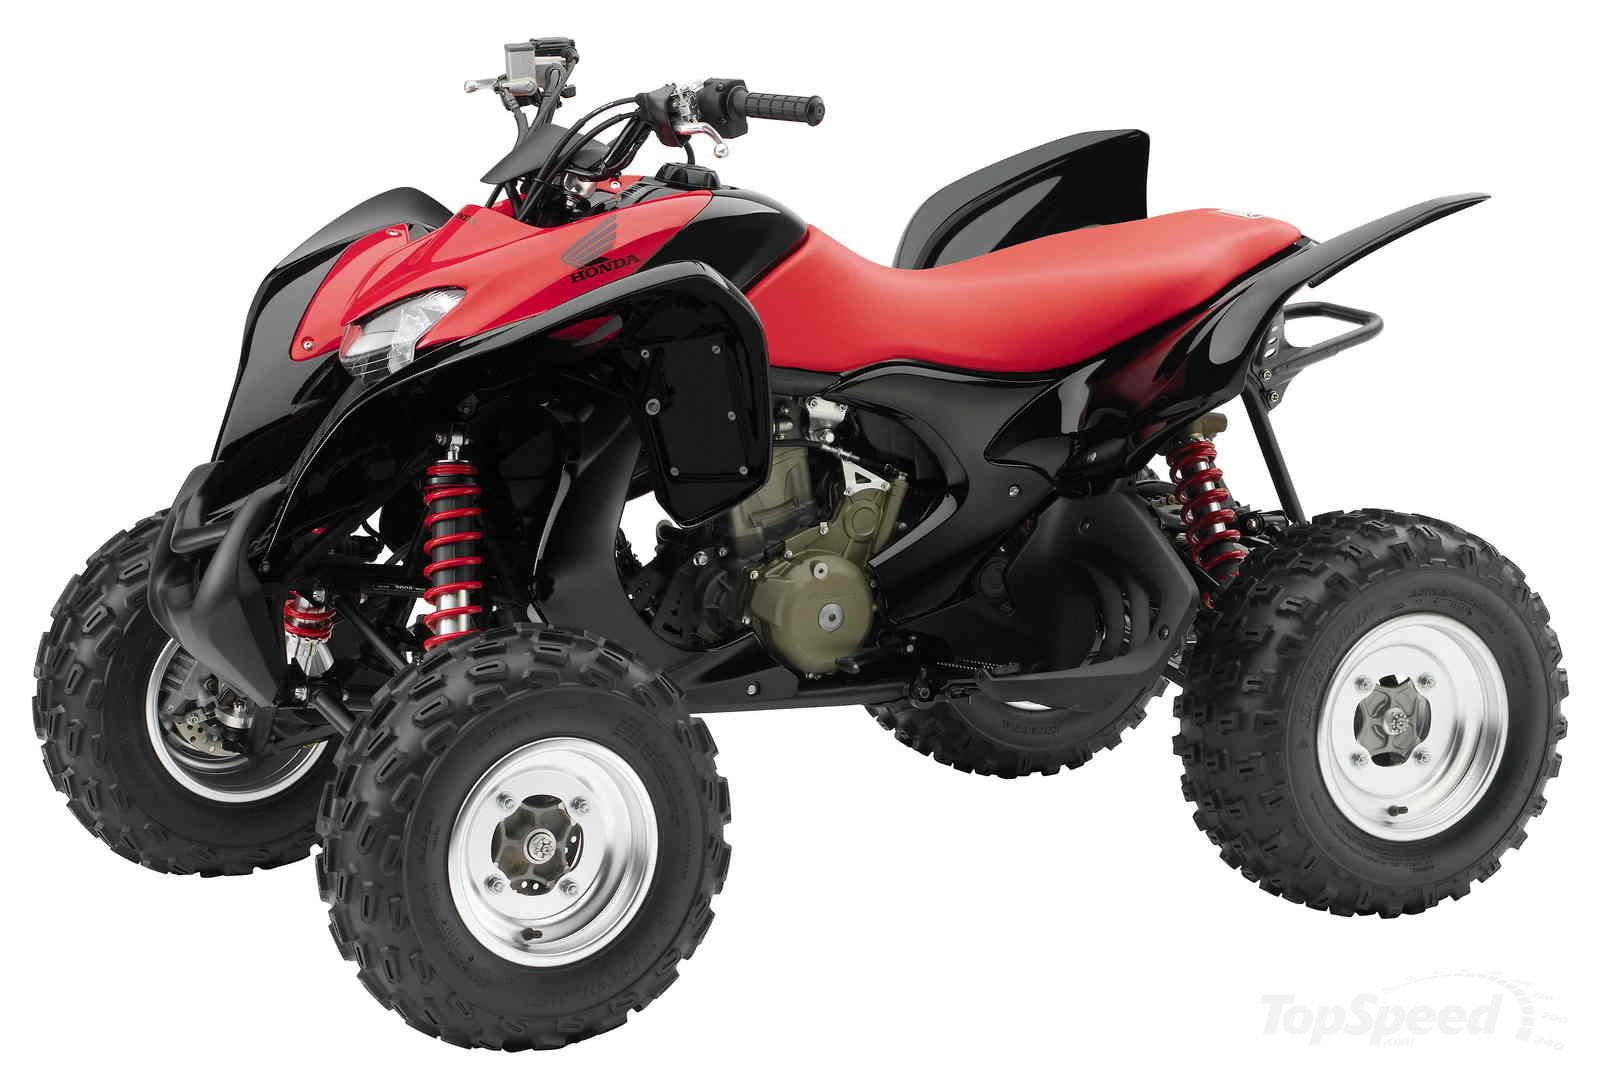 This 2009 year atv model is one of the toughest rugged and powerful sport four wheelers from honda this metallic black and red color atv is truly